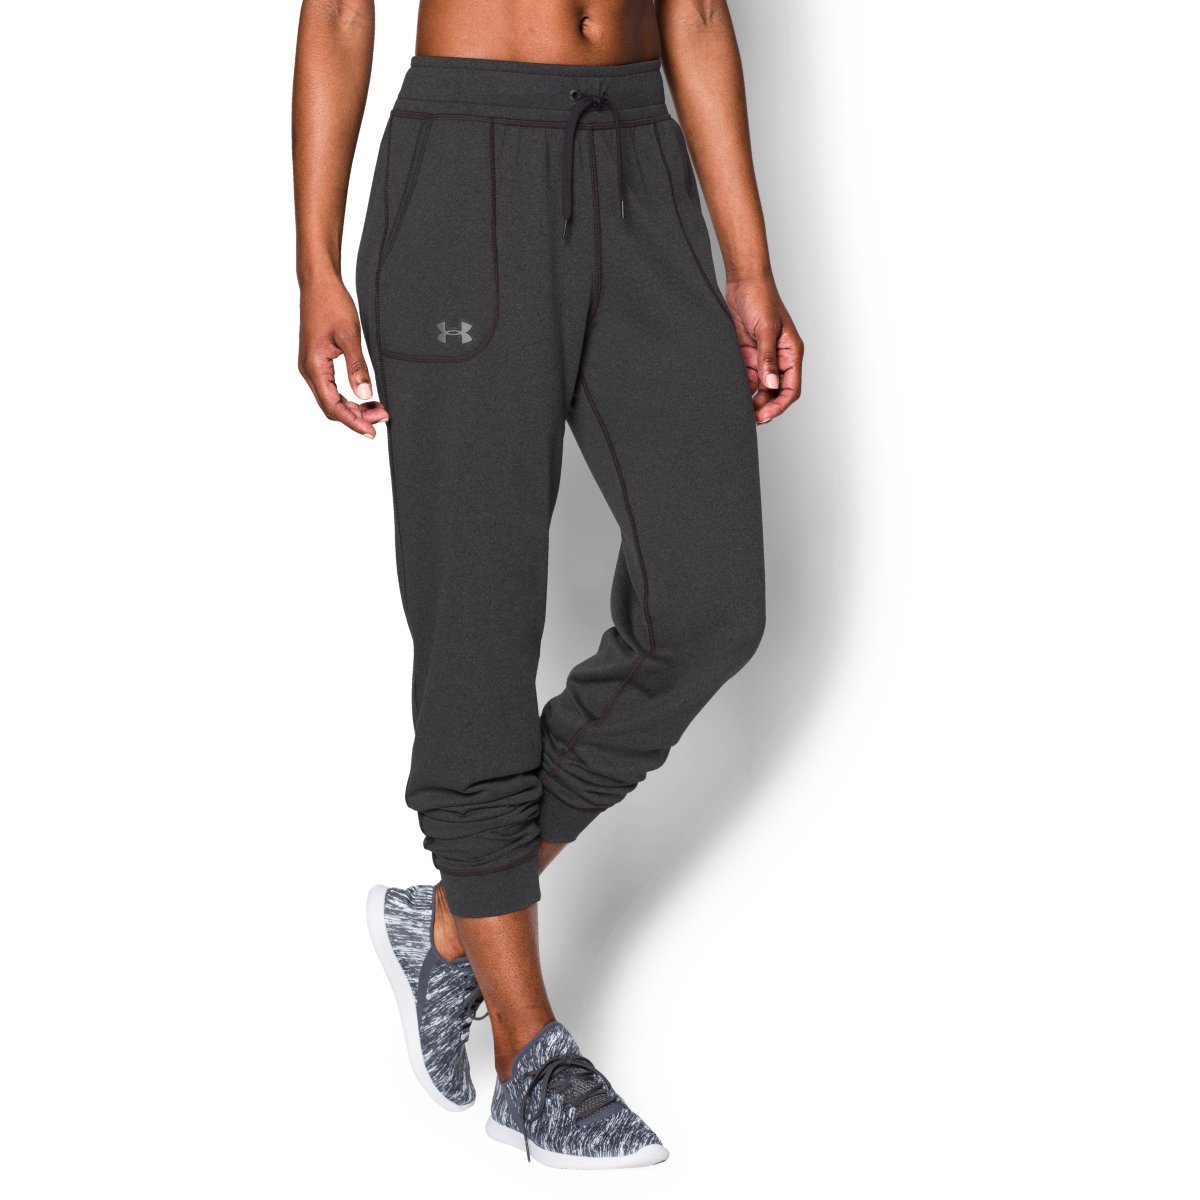 Amazing Find The Hottest Sneaker Drops From Brands Like Jordan, Nike, Under Armour, New Balance  It Features Nikes Biggest Heel A